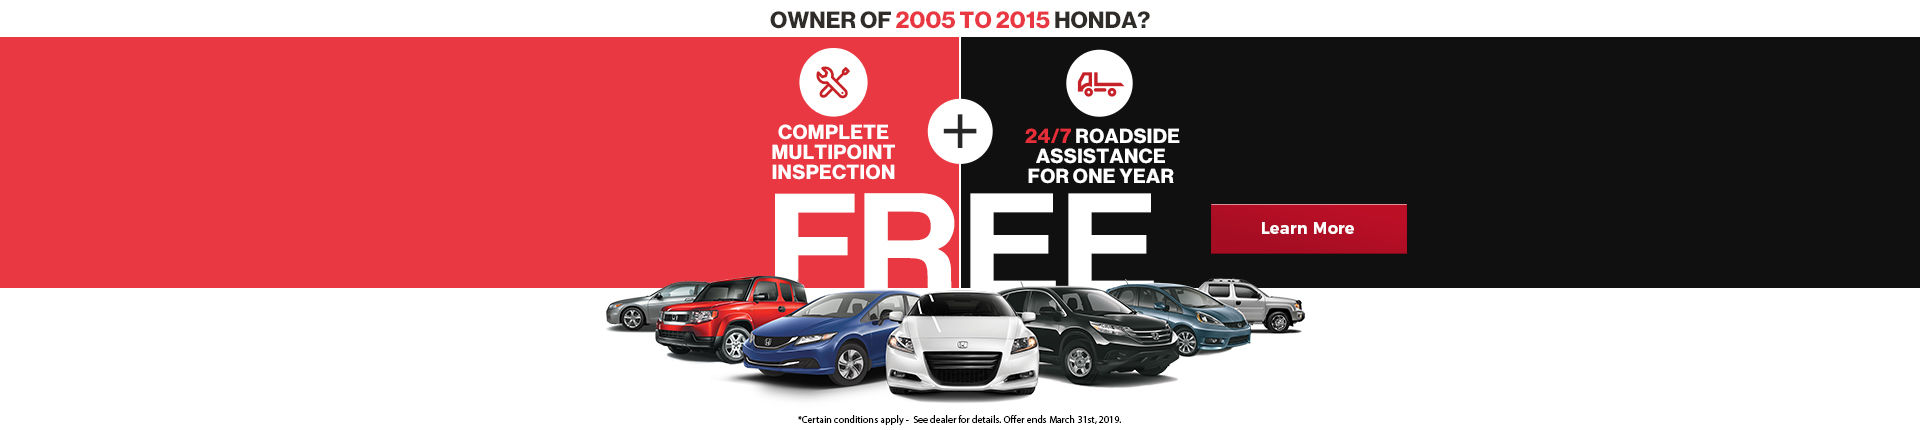 Free Multipoint Inspection and Roadside Assistance!